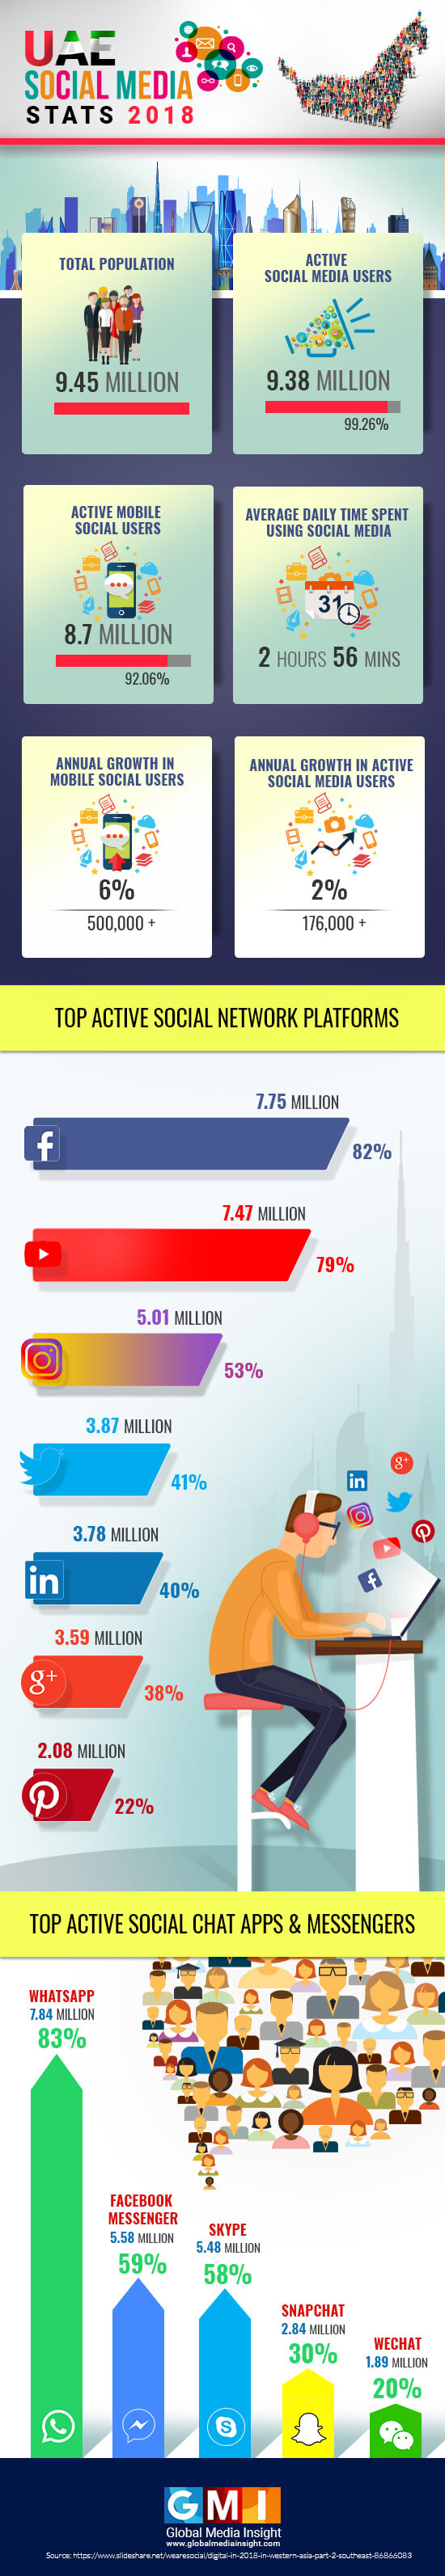 Social Media Usage in UAE : 2018